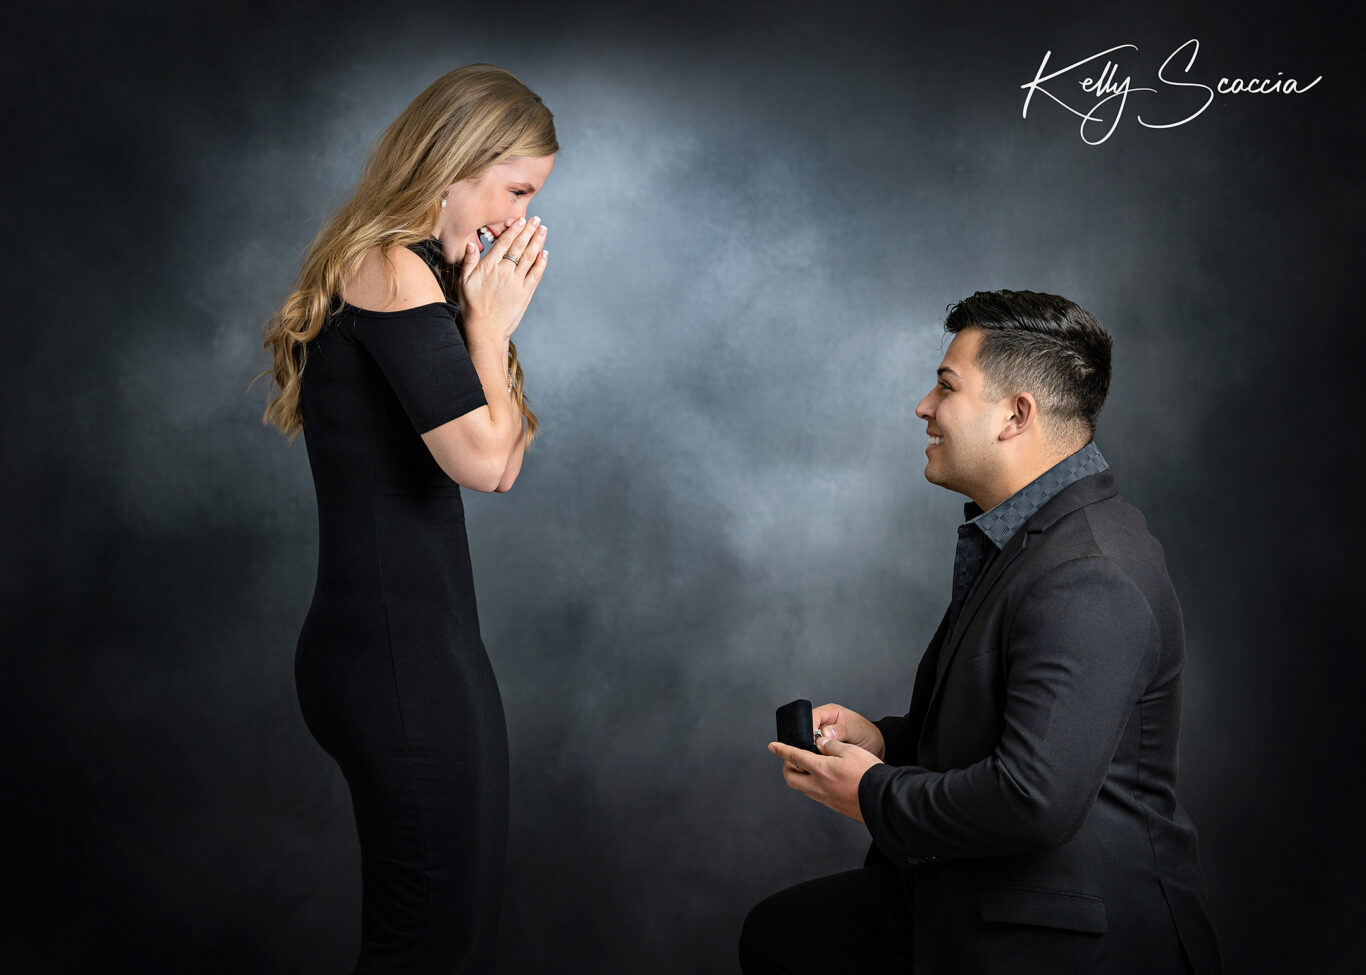 Studio engagement portrait of man with dark hair, dark pants and shirt, woman with long, blonde hair, wearing black short cocktail dress surprising her on his knee with ring in box